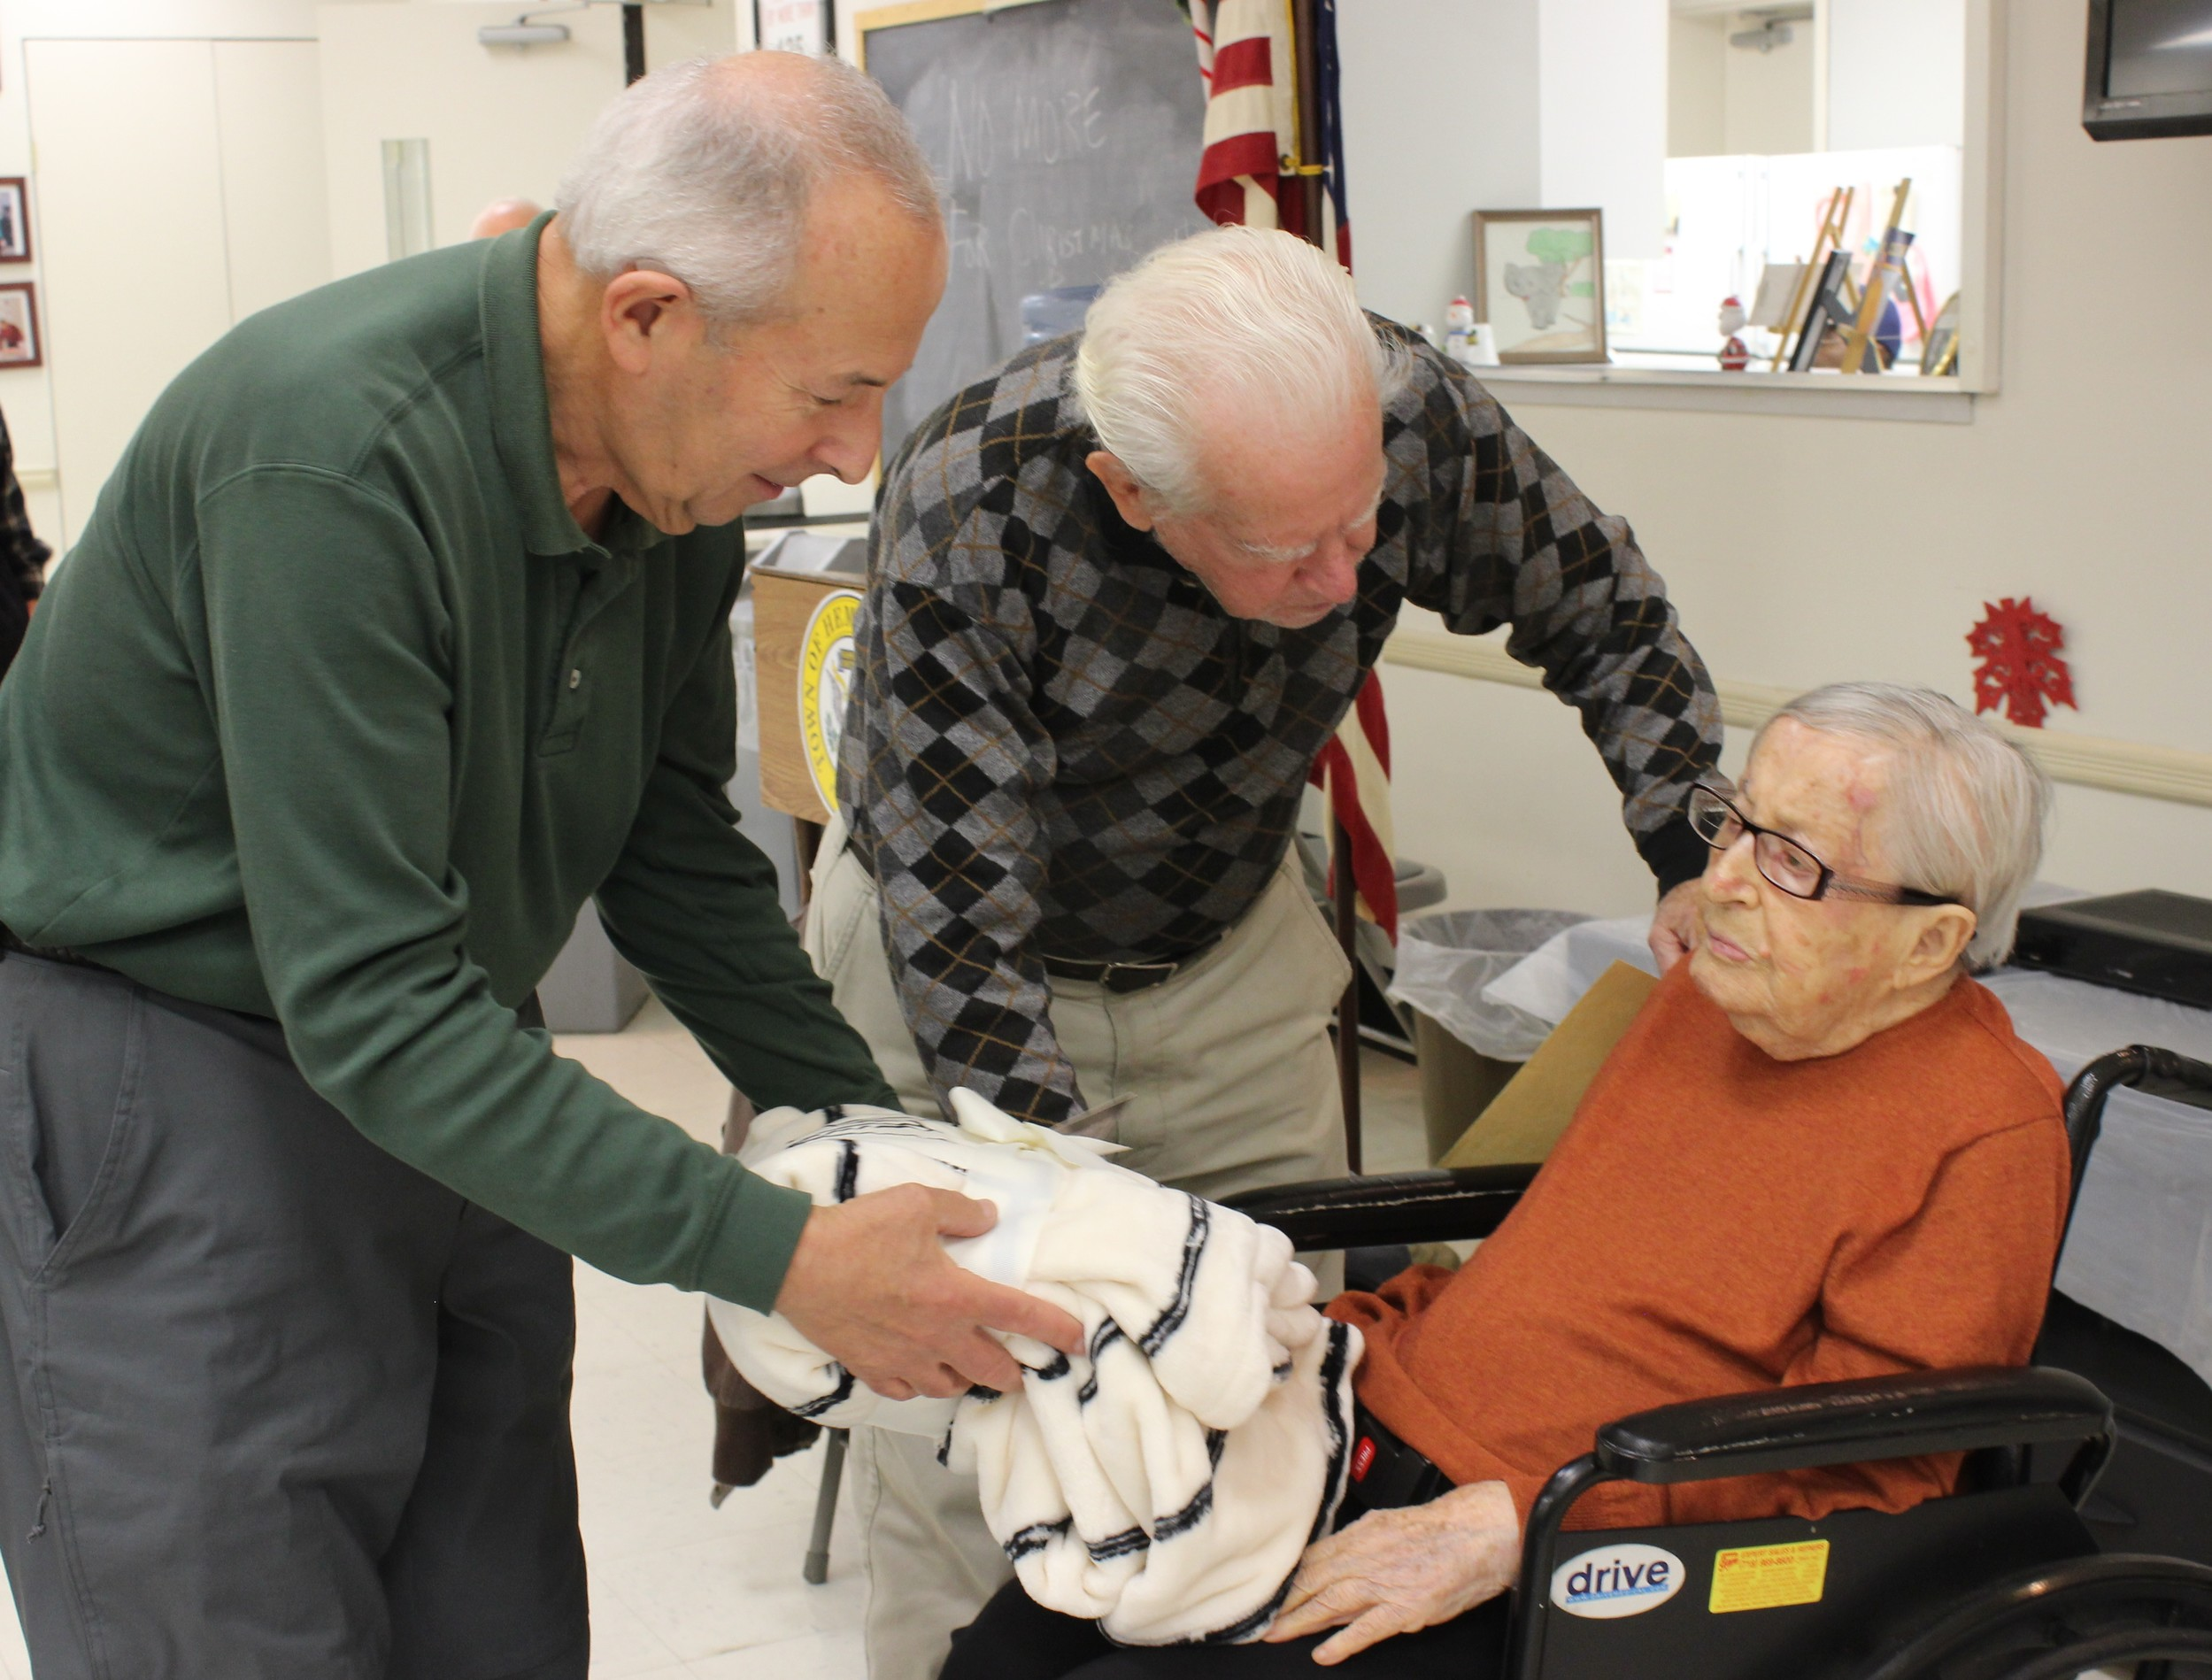 Burt Spiegel and Ray Ronco gifted a soft, white blanket to Mollie Spiegel for her 106th birthday on behalf of the family.